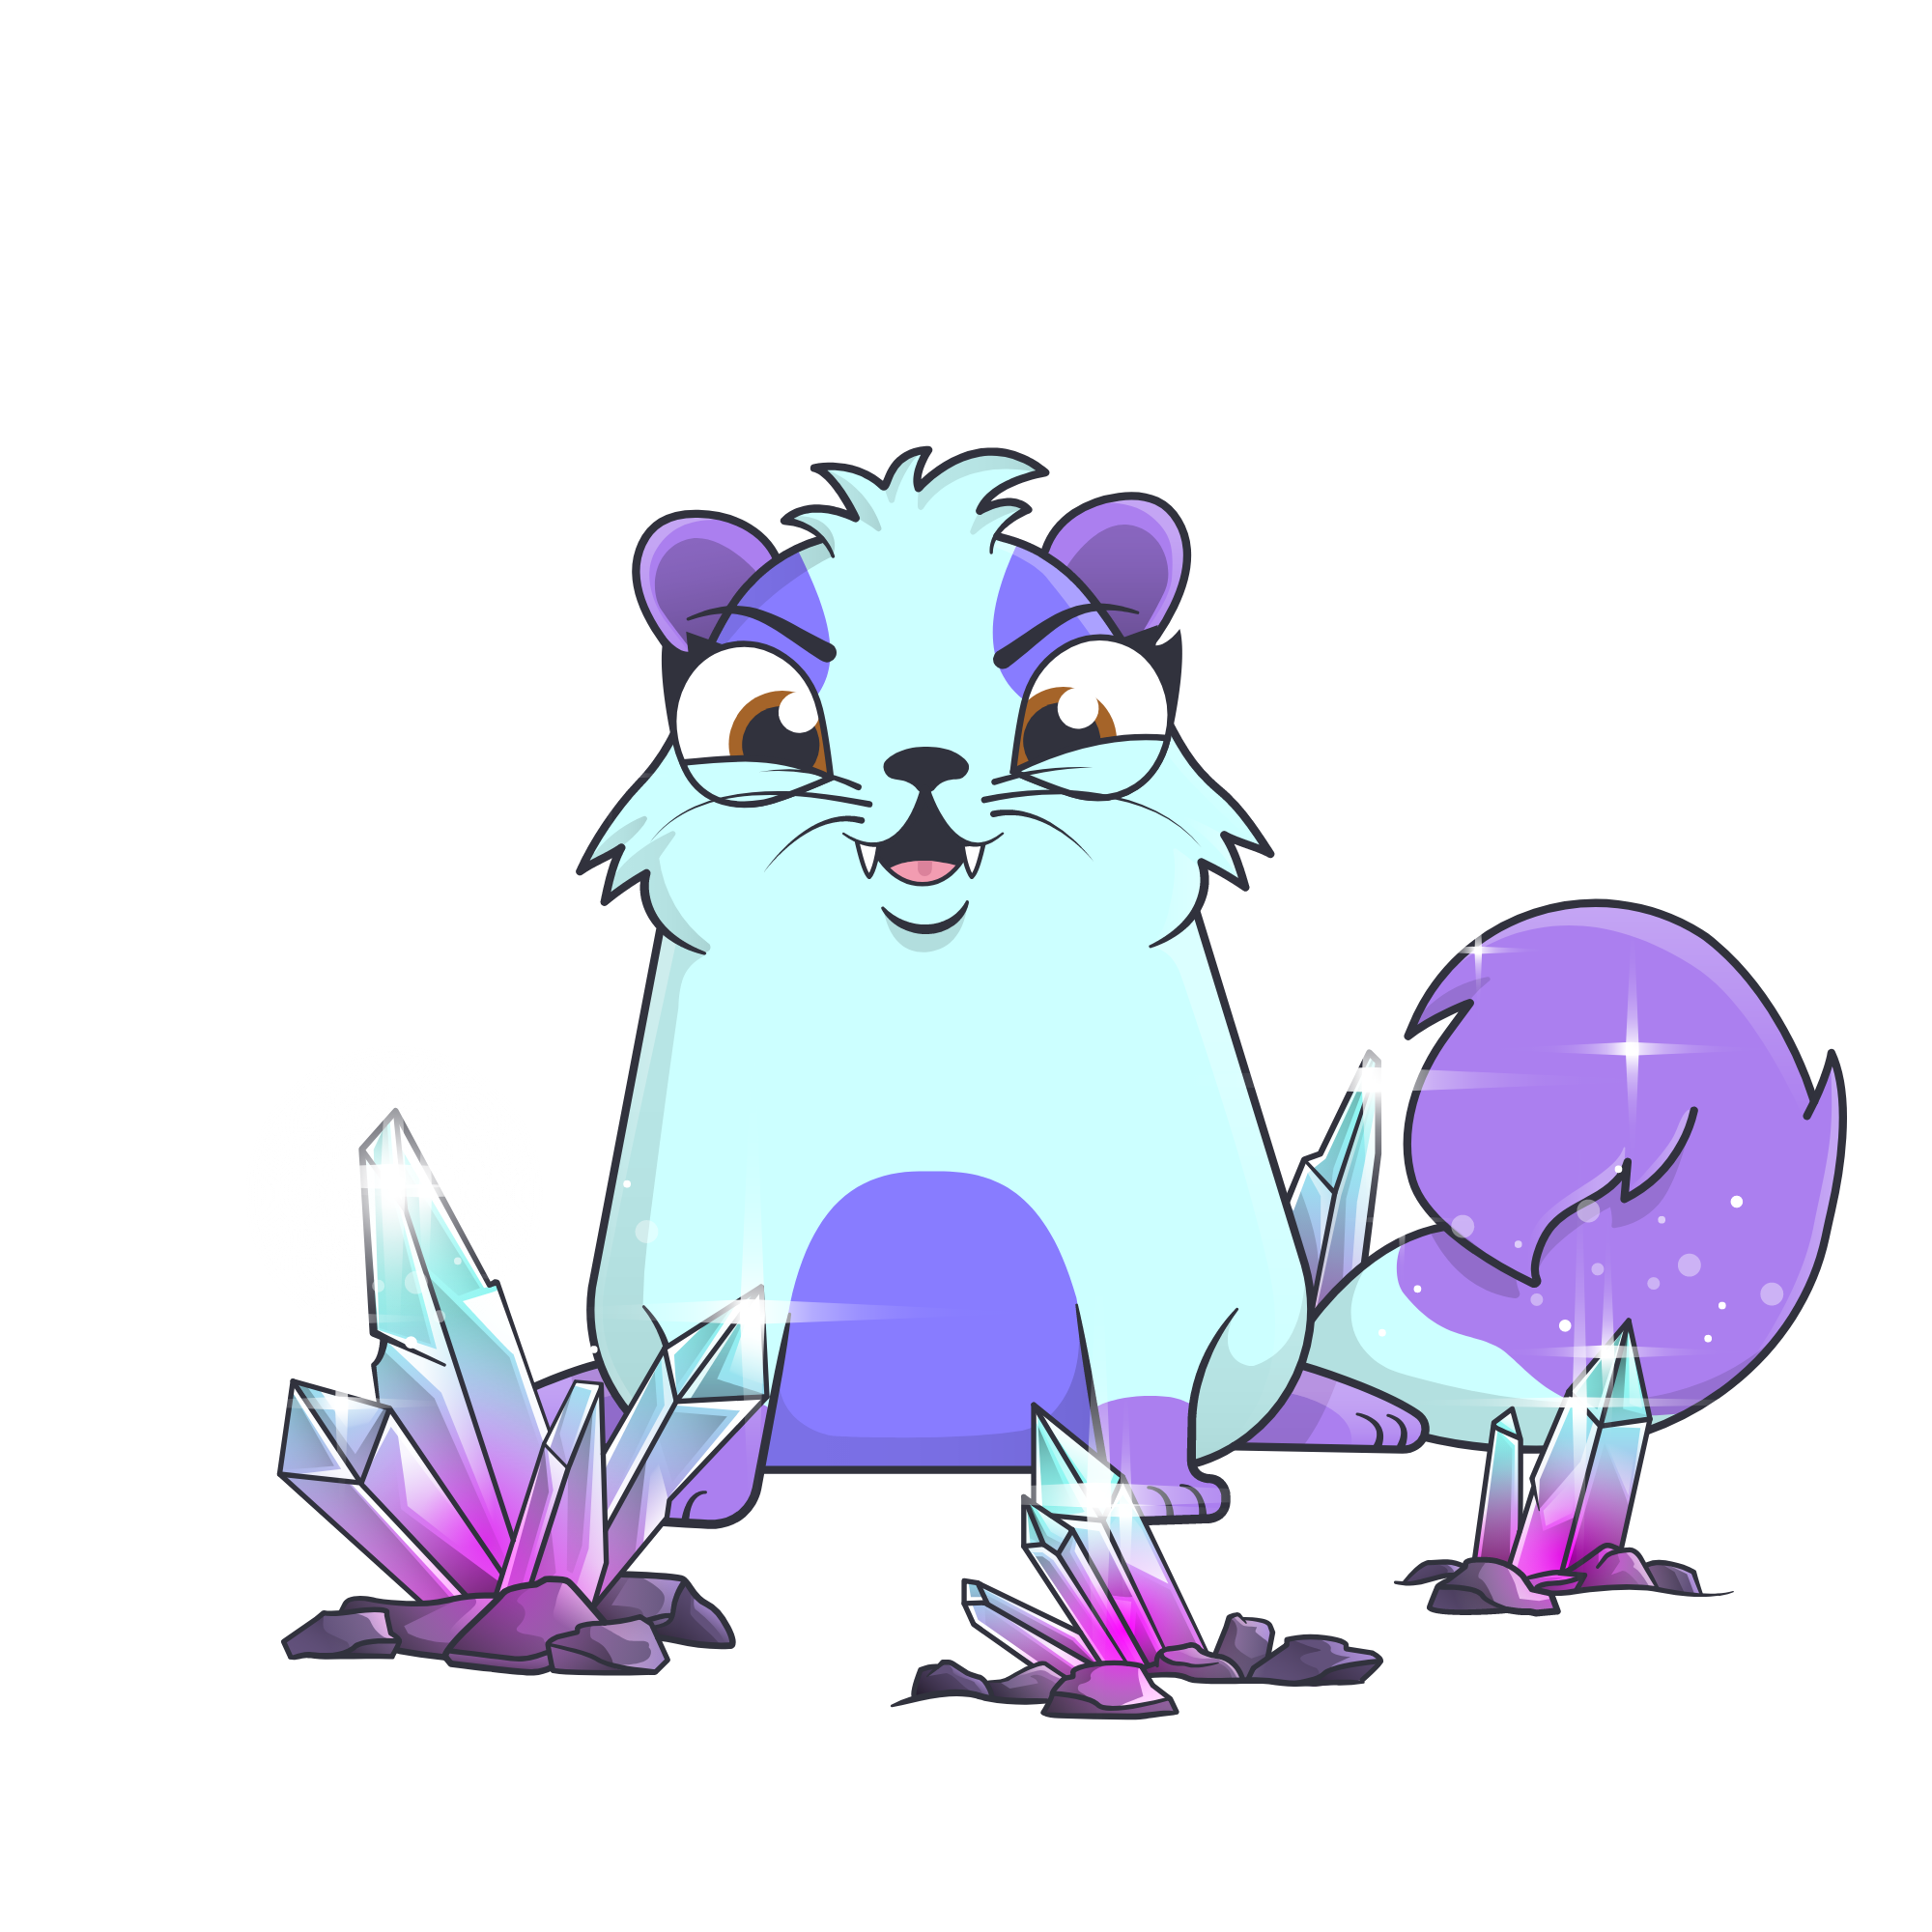 cryptokitty #1951384